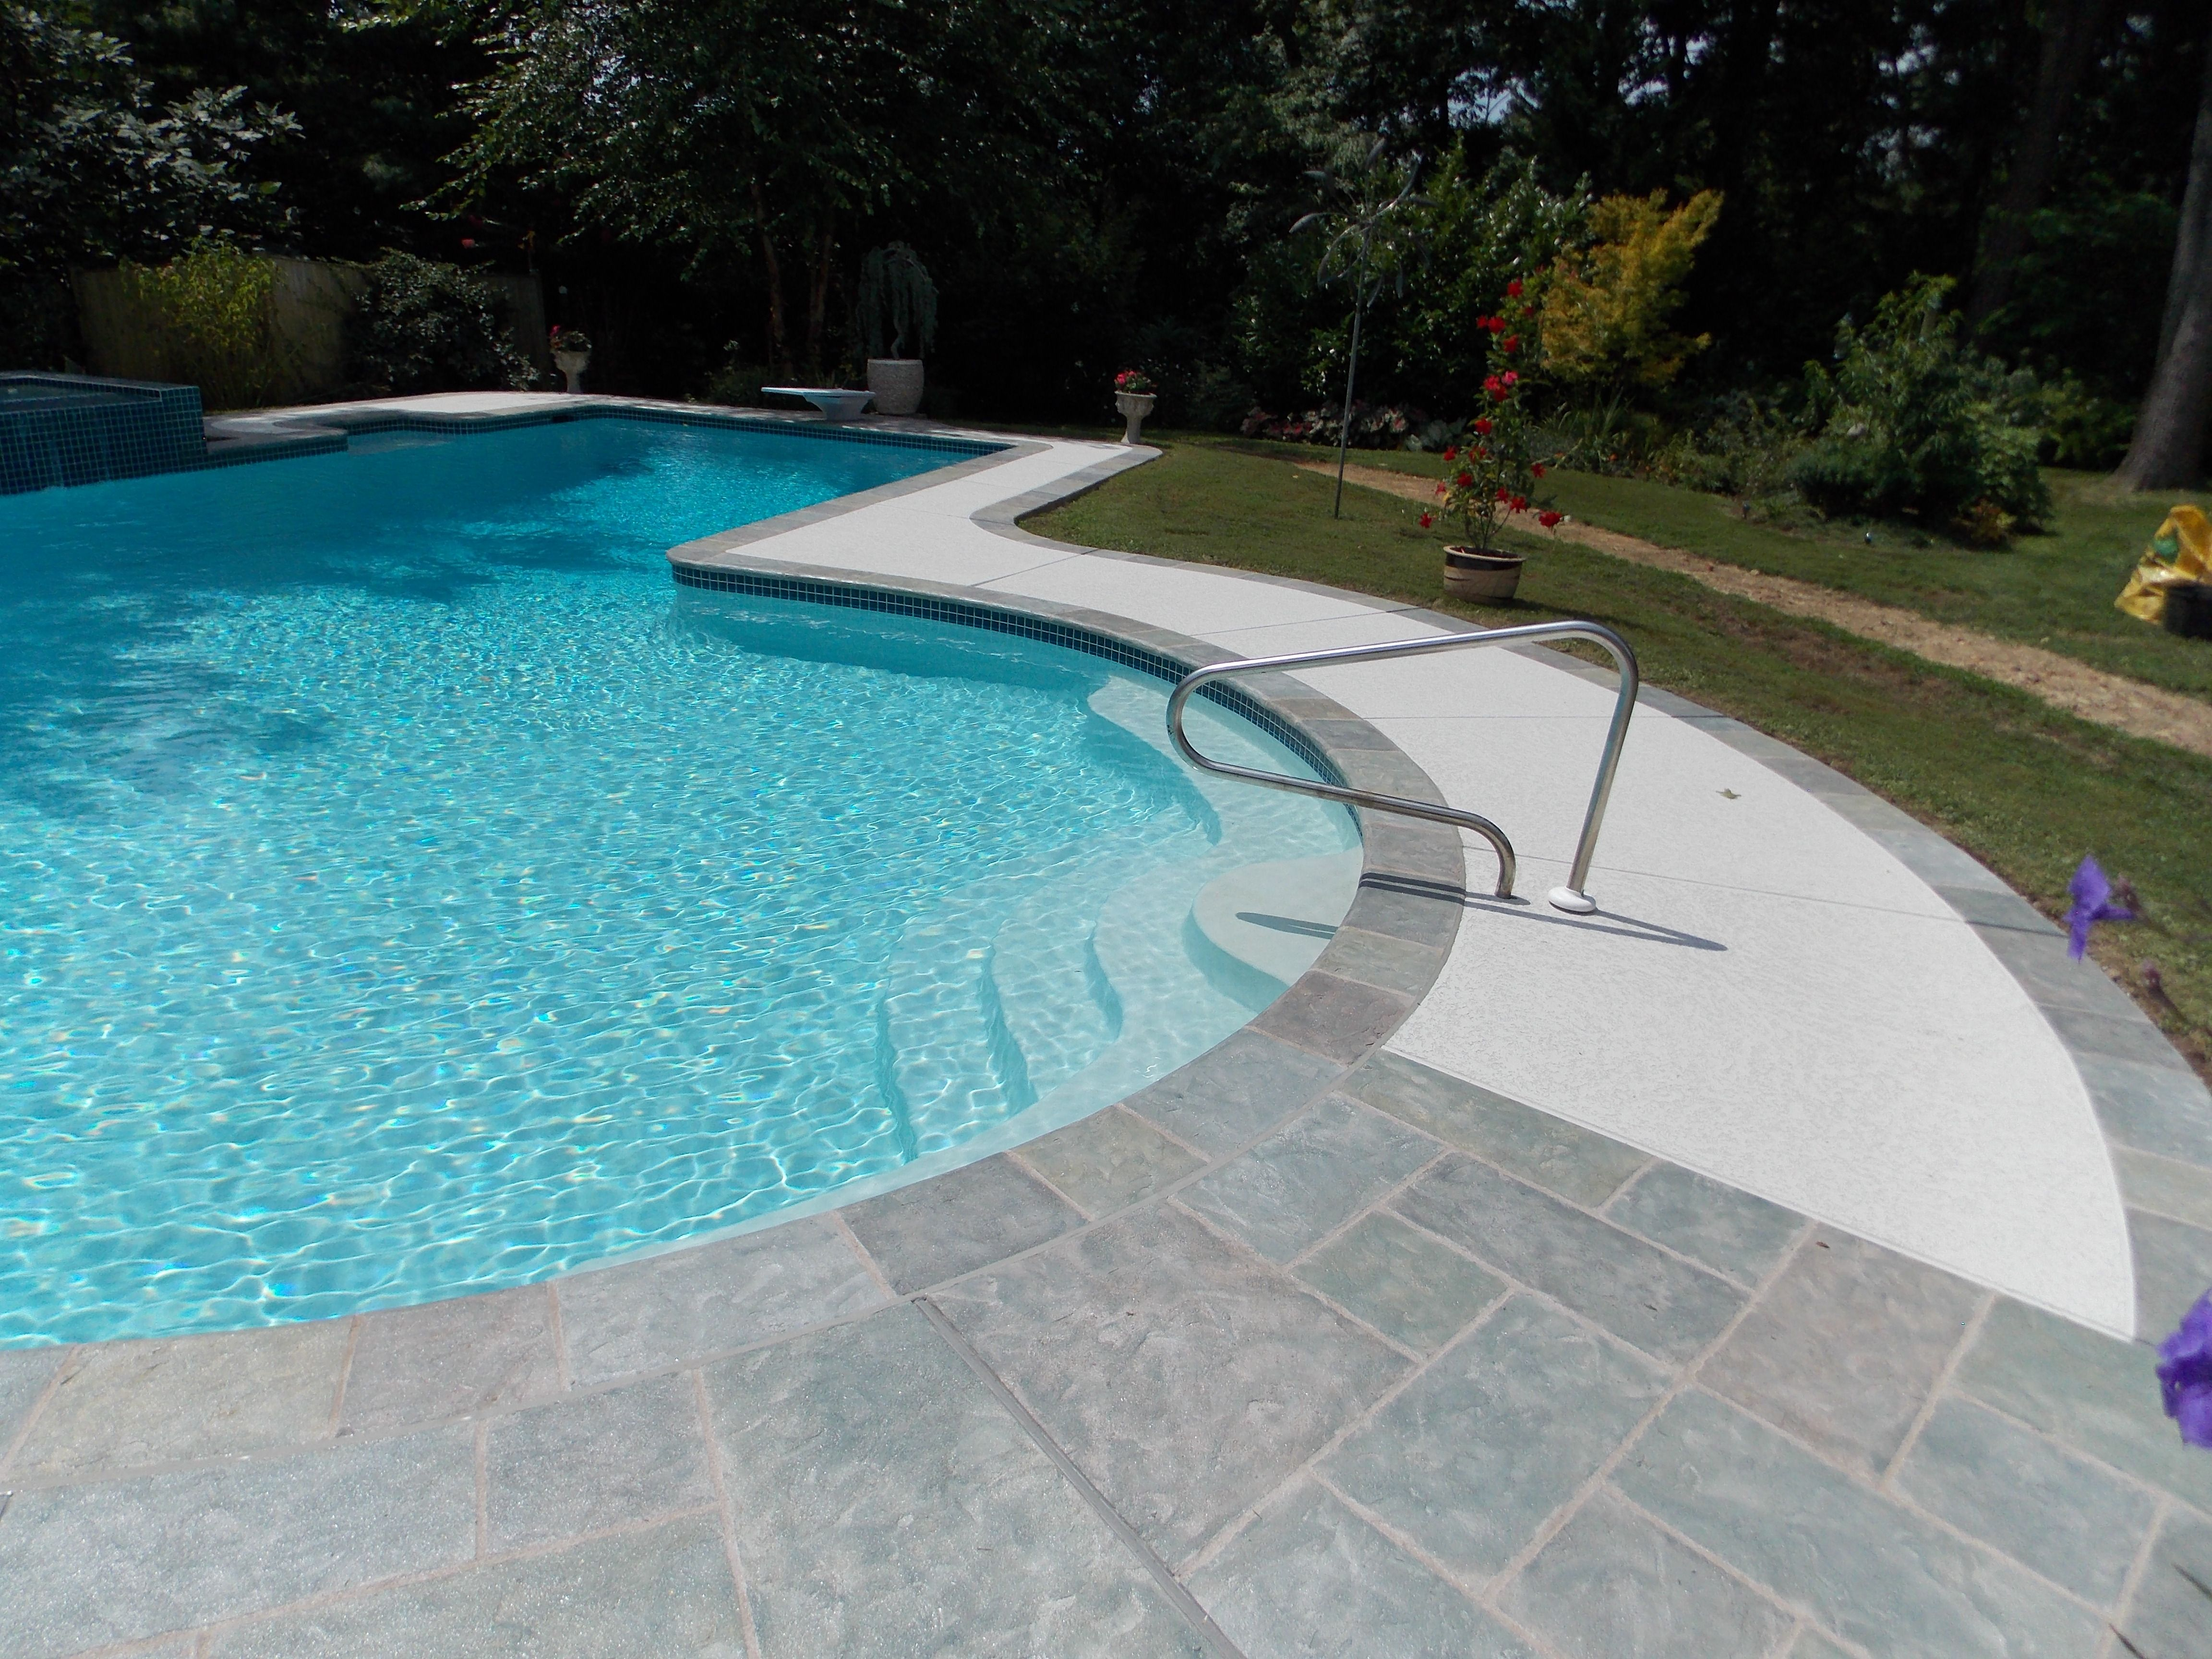 Nothing Frames Sparkling Pool Better Than A Stamped Concrete Pool Deck It Is Safe Cool To The Feet And Absolutely Stunnin Pool Decks Concrete Pool Pool Deck